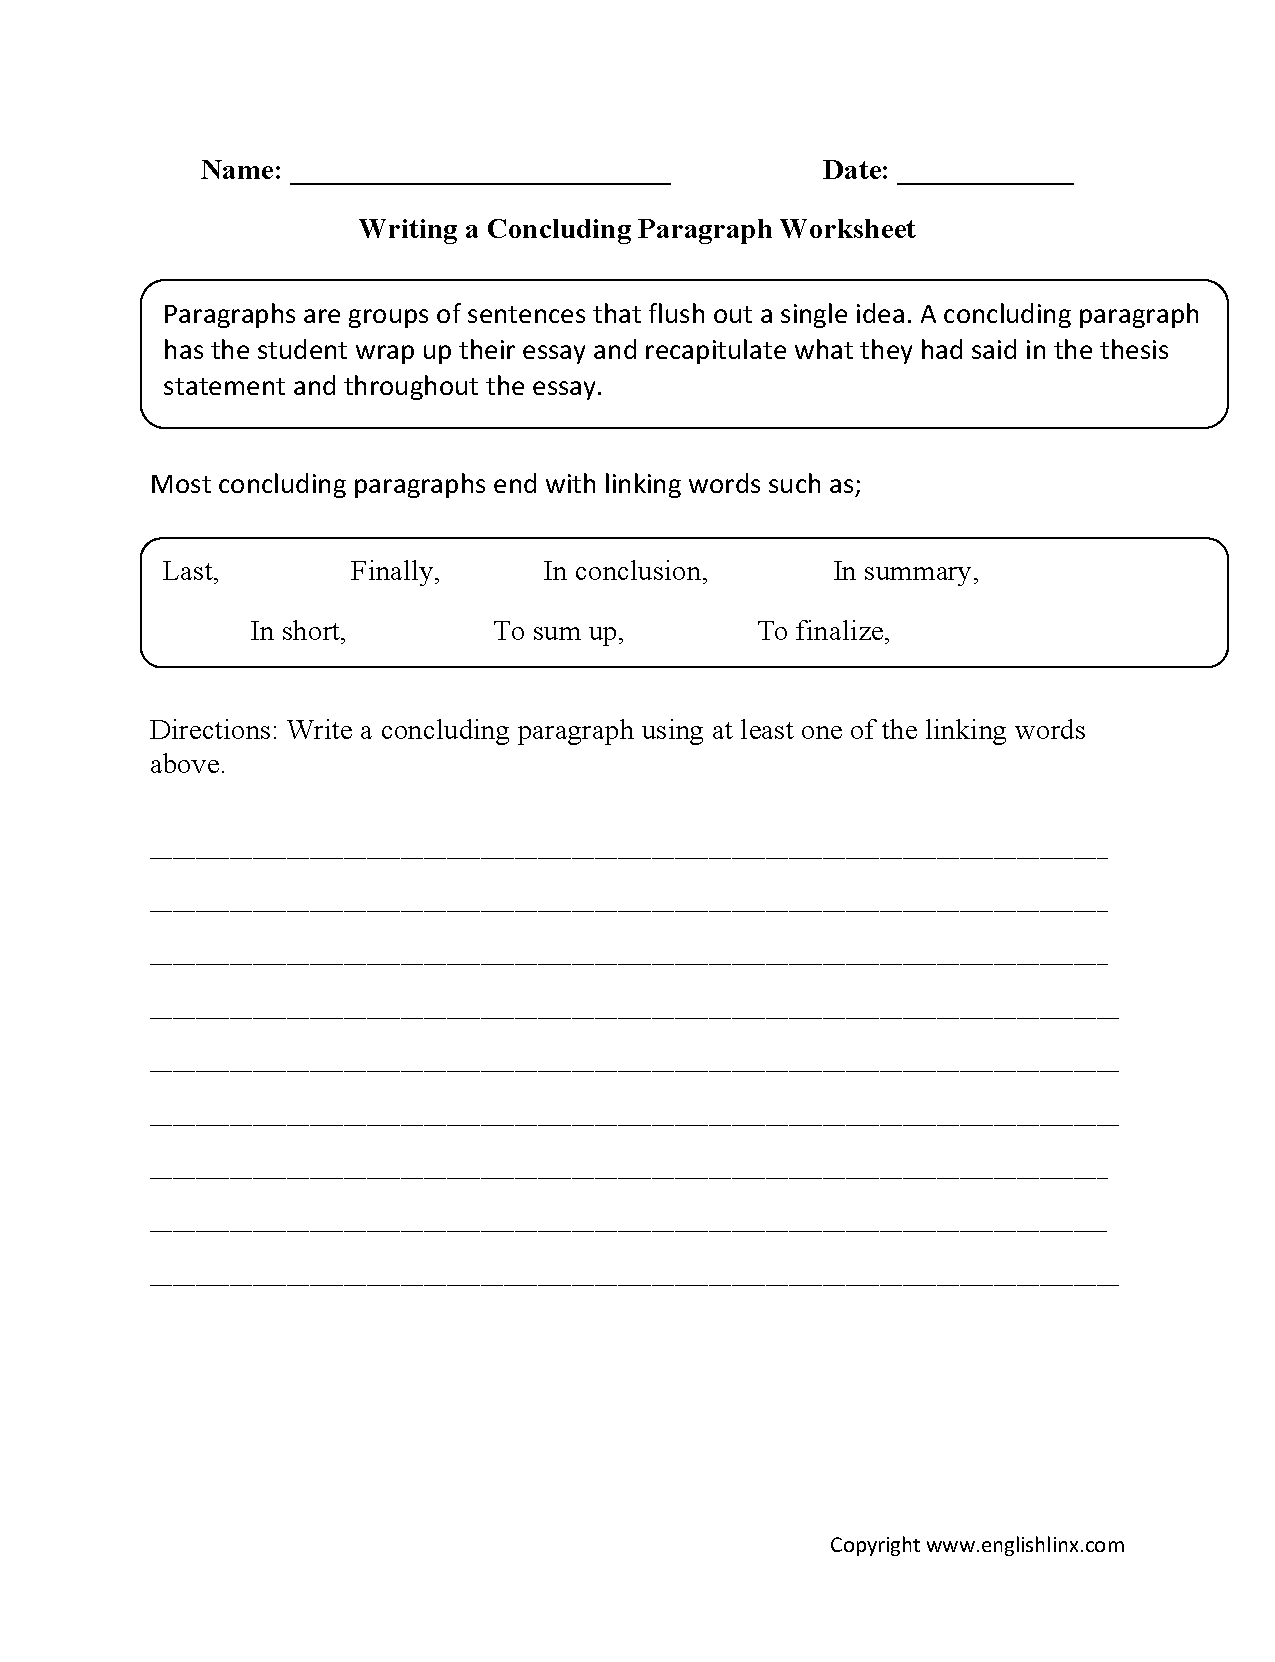 writing concluding paragraph worksheets | eng-writing | writing